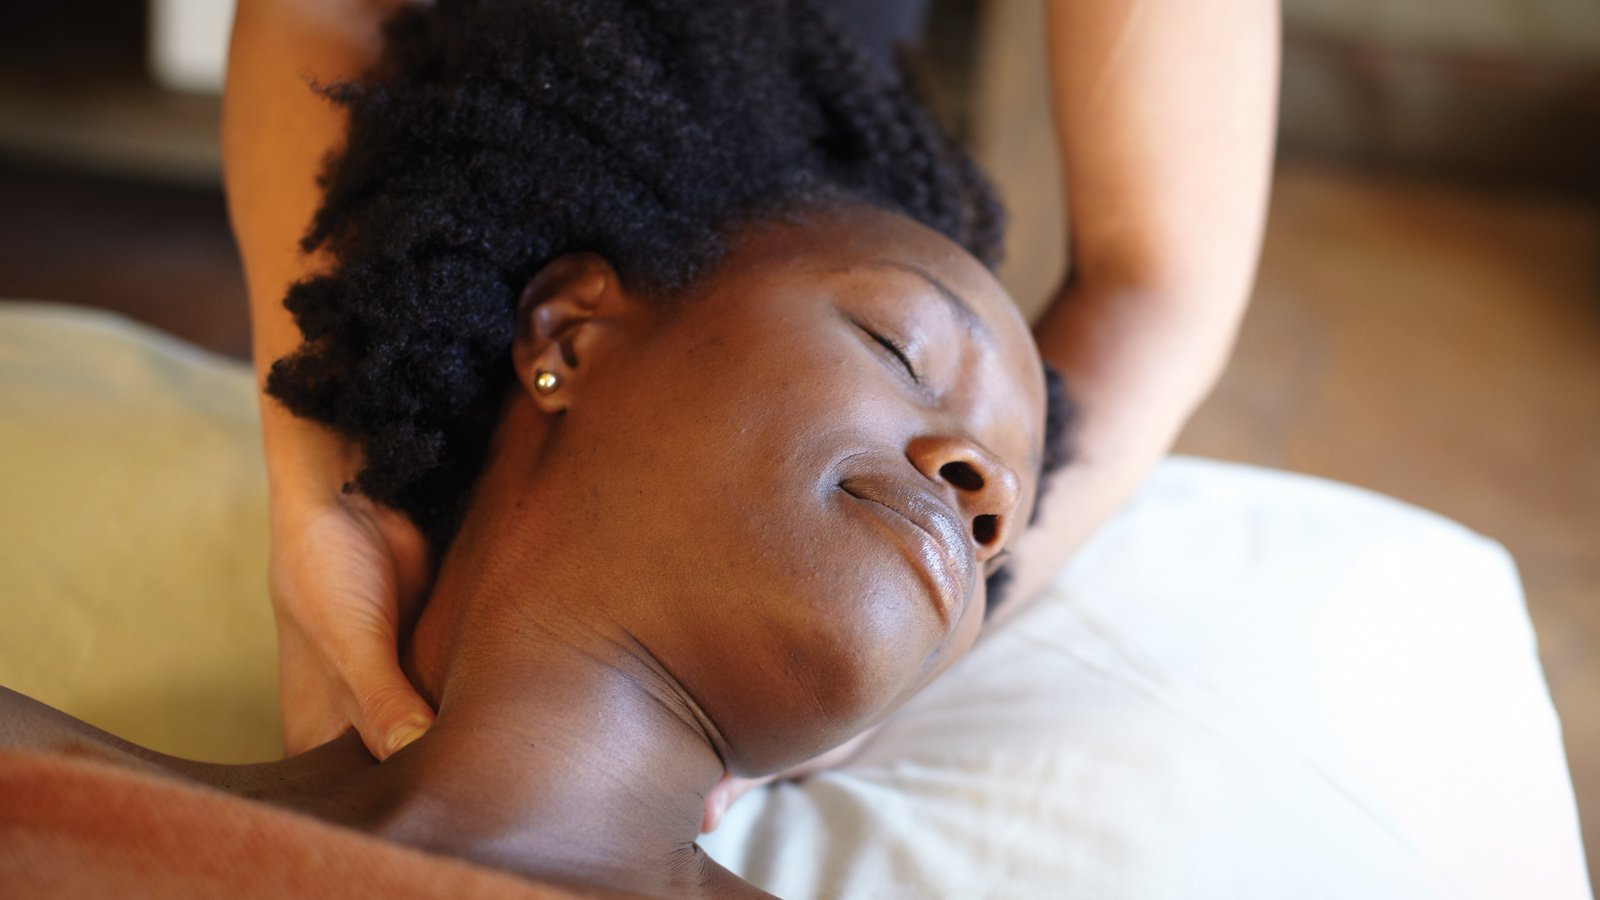 craniosacral therapy at miraval life in balance spa